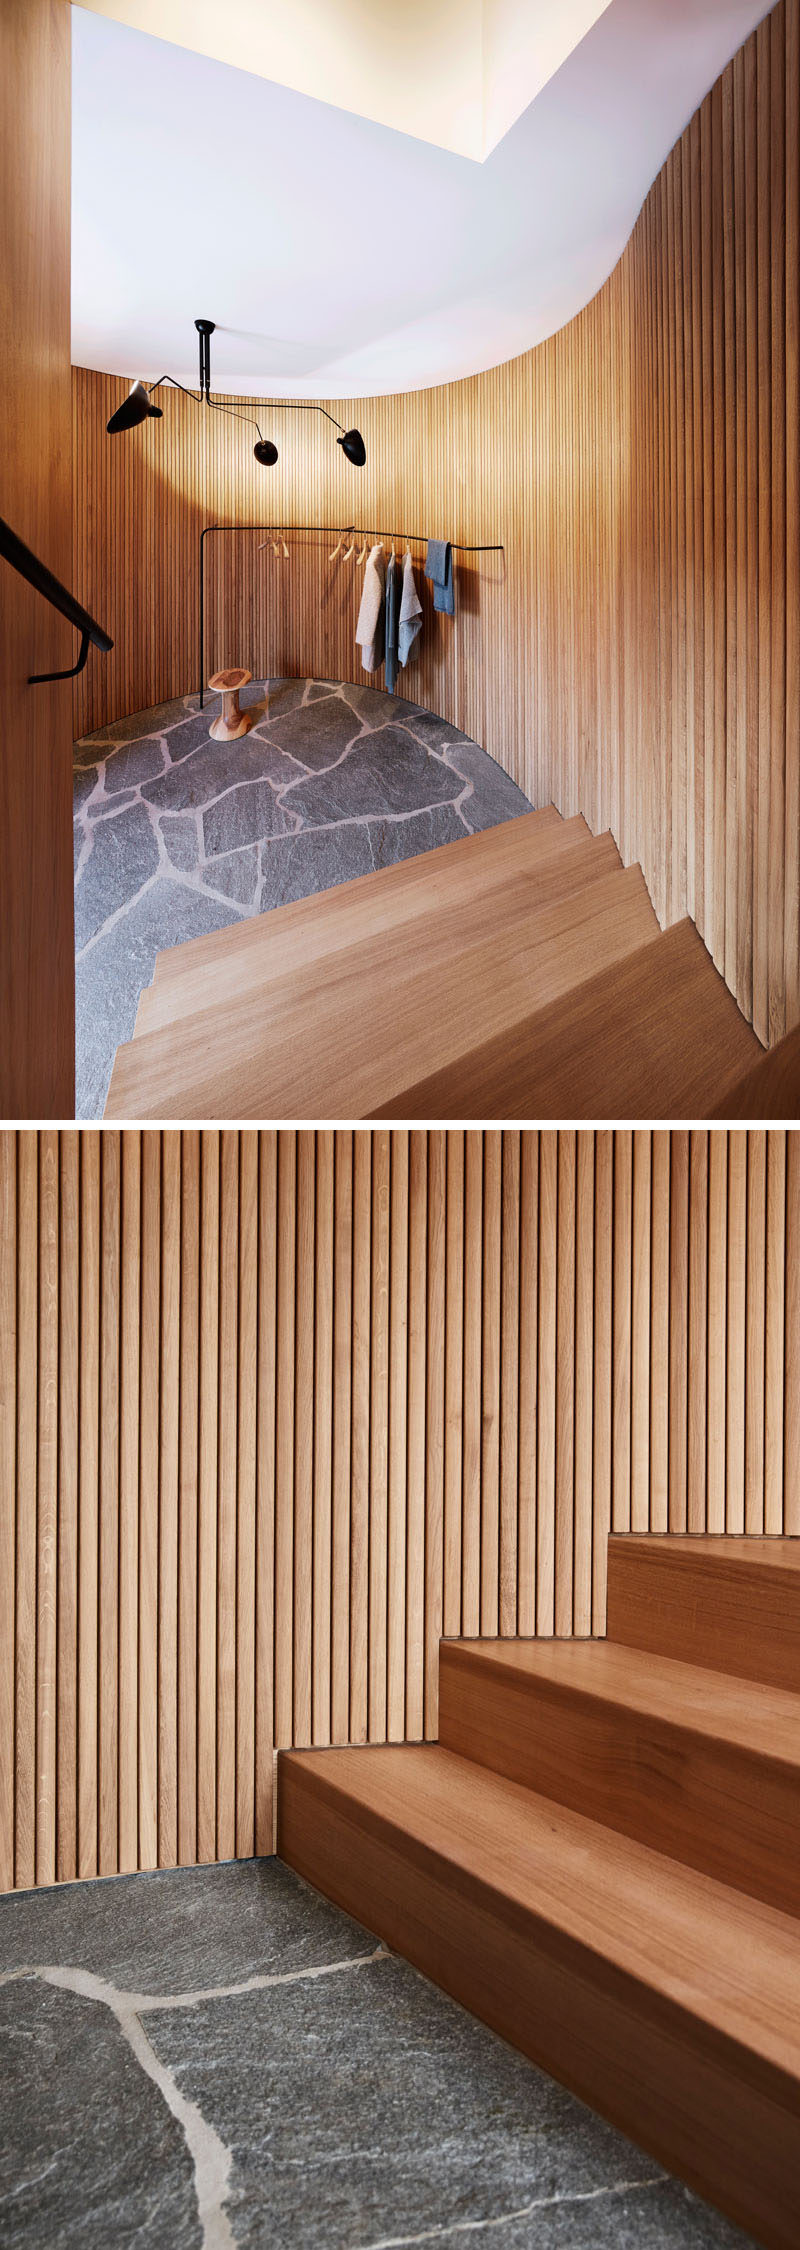 These stairs are surrounded by wooden slats that curve around and create a softer look for the space. At the bottom of the stairs, a simple rail provides a place to hang outerwear.